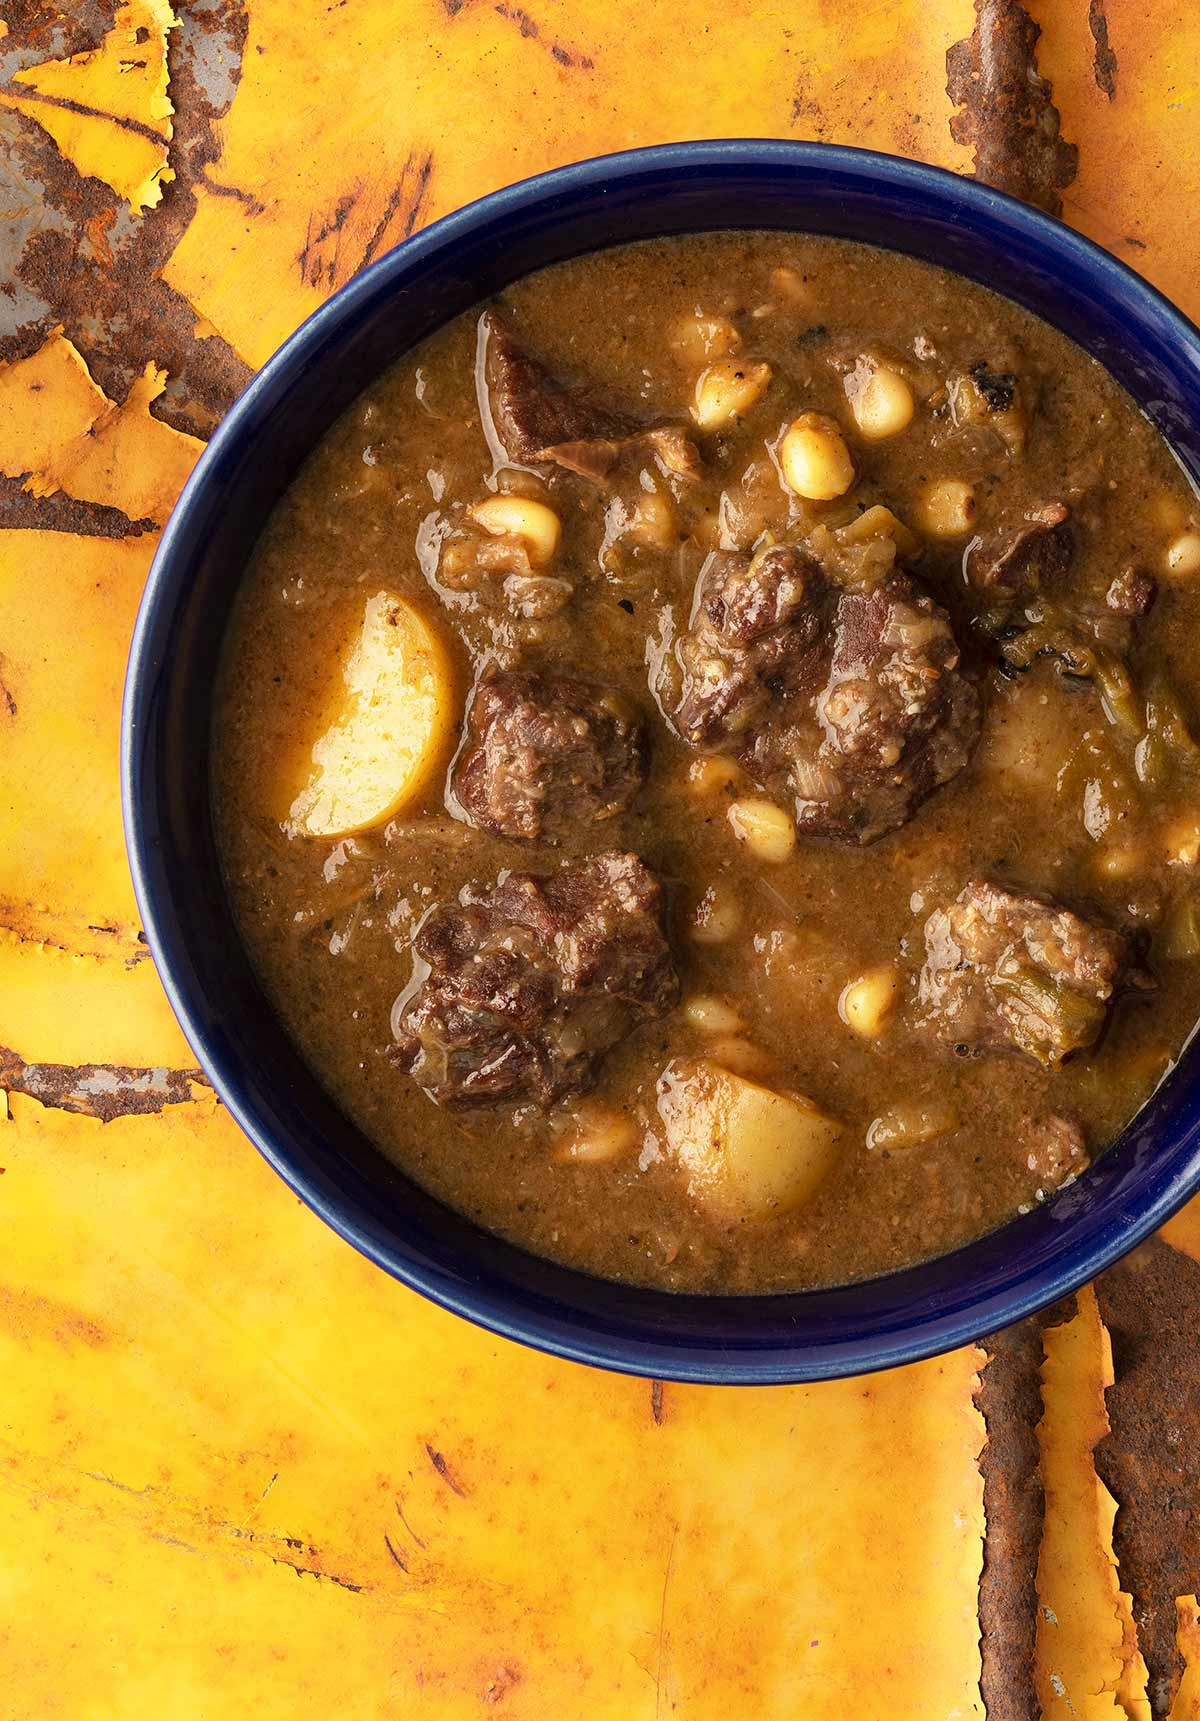 green chile stew in a bowl